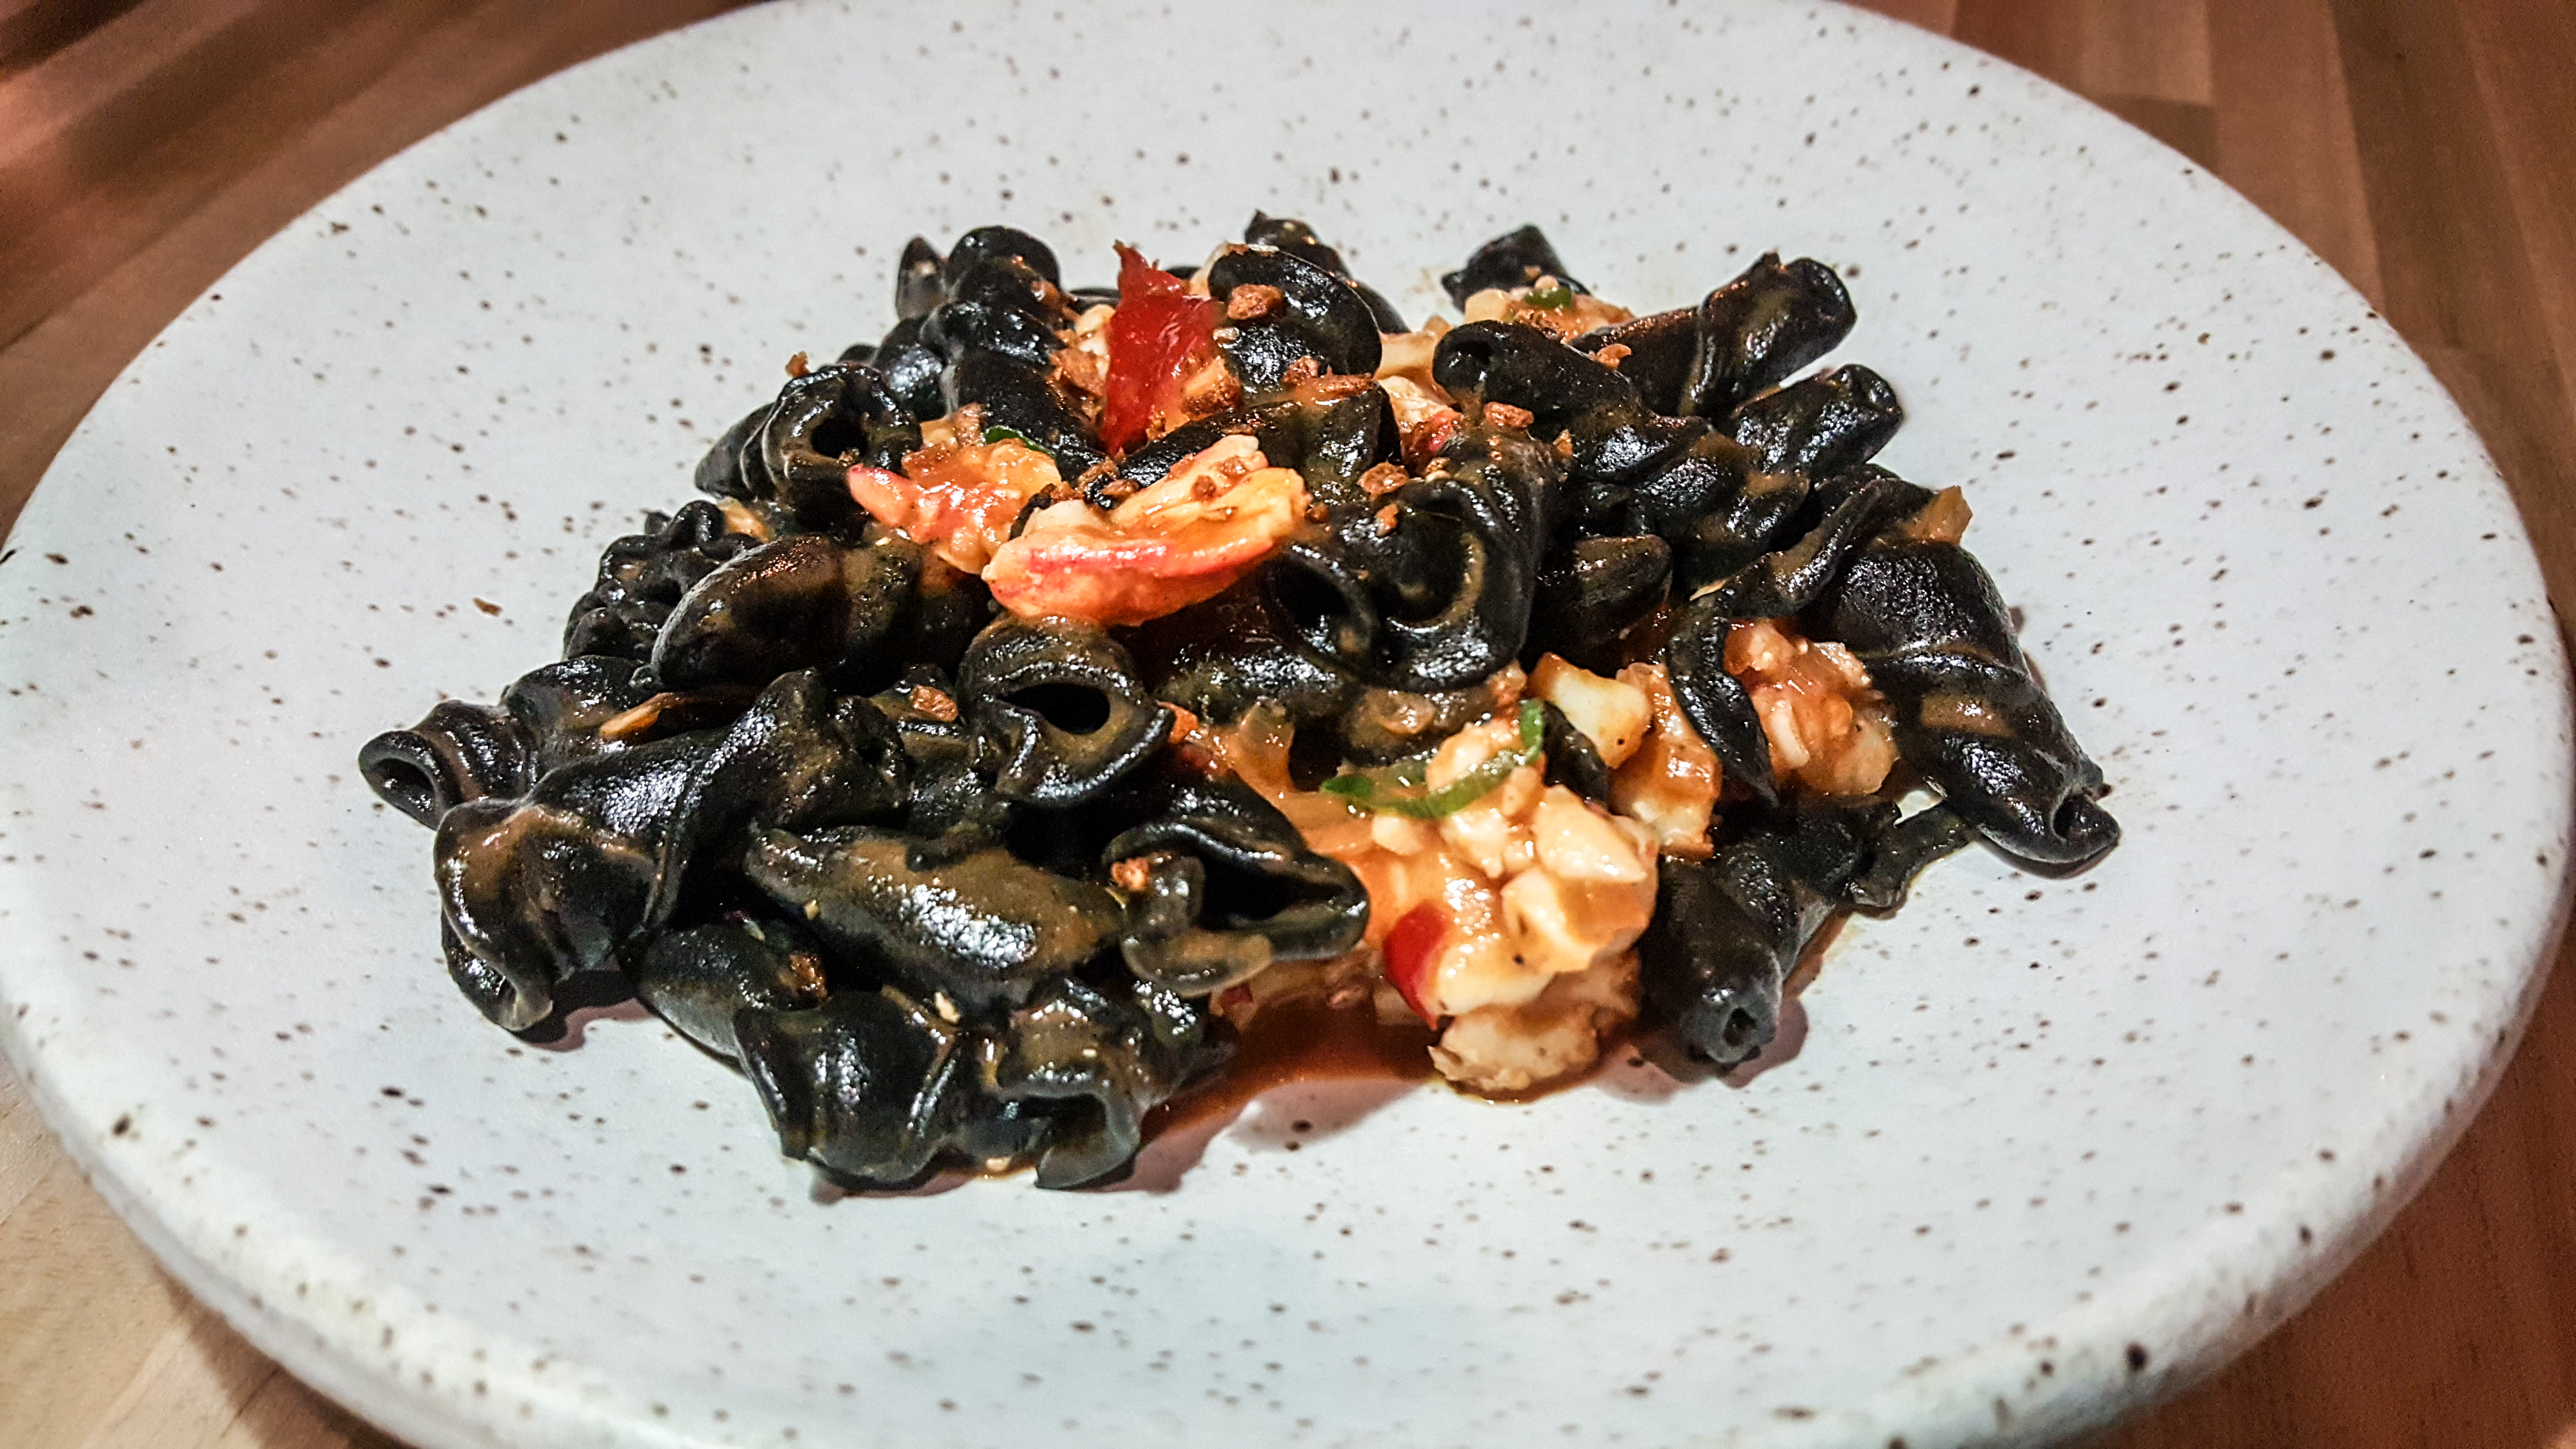 Black campanelle pasta with chunks of lobster on an earthy, white-speckled plate